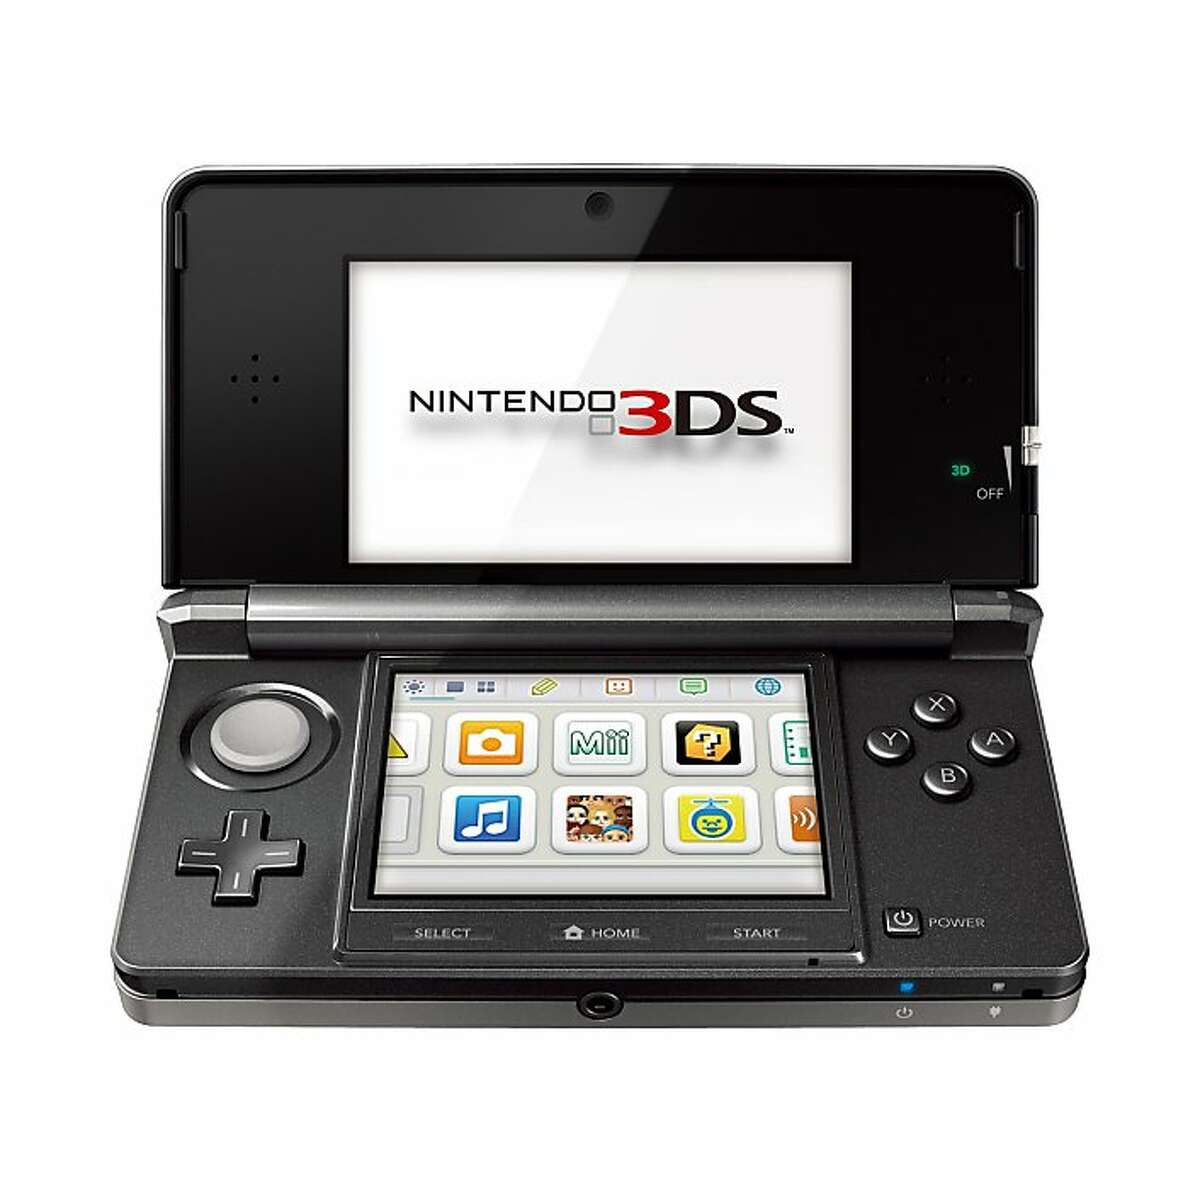 Nintendo's new 3DS system has a touch screen on the bottom and an adjustable 3D screen at top that works without special glasses. Ran on: 03-22-2011 Nintendo's new 3DS features a touch-screen on bottom, and a 3-D adjustable screen, top.